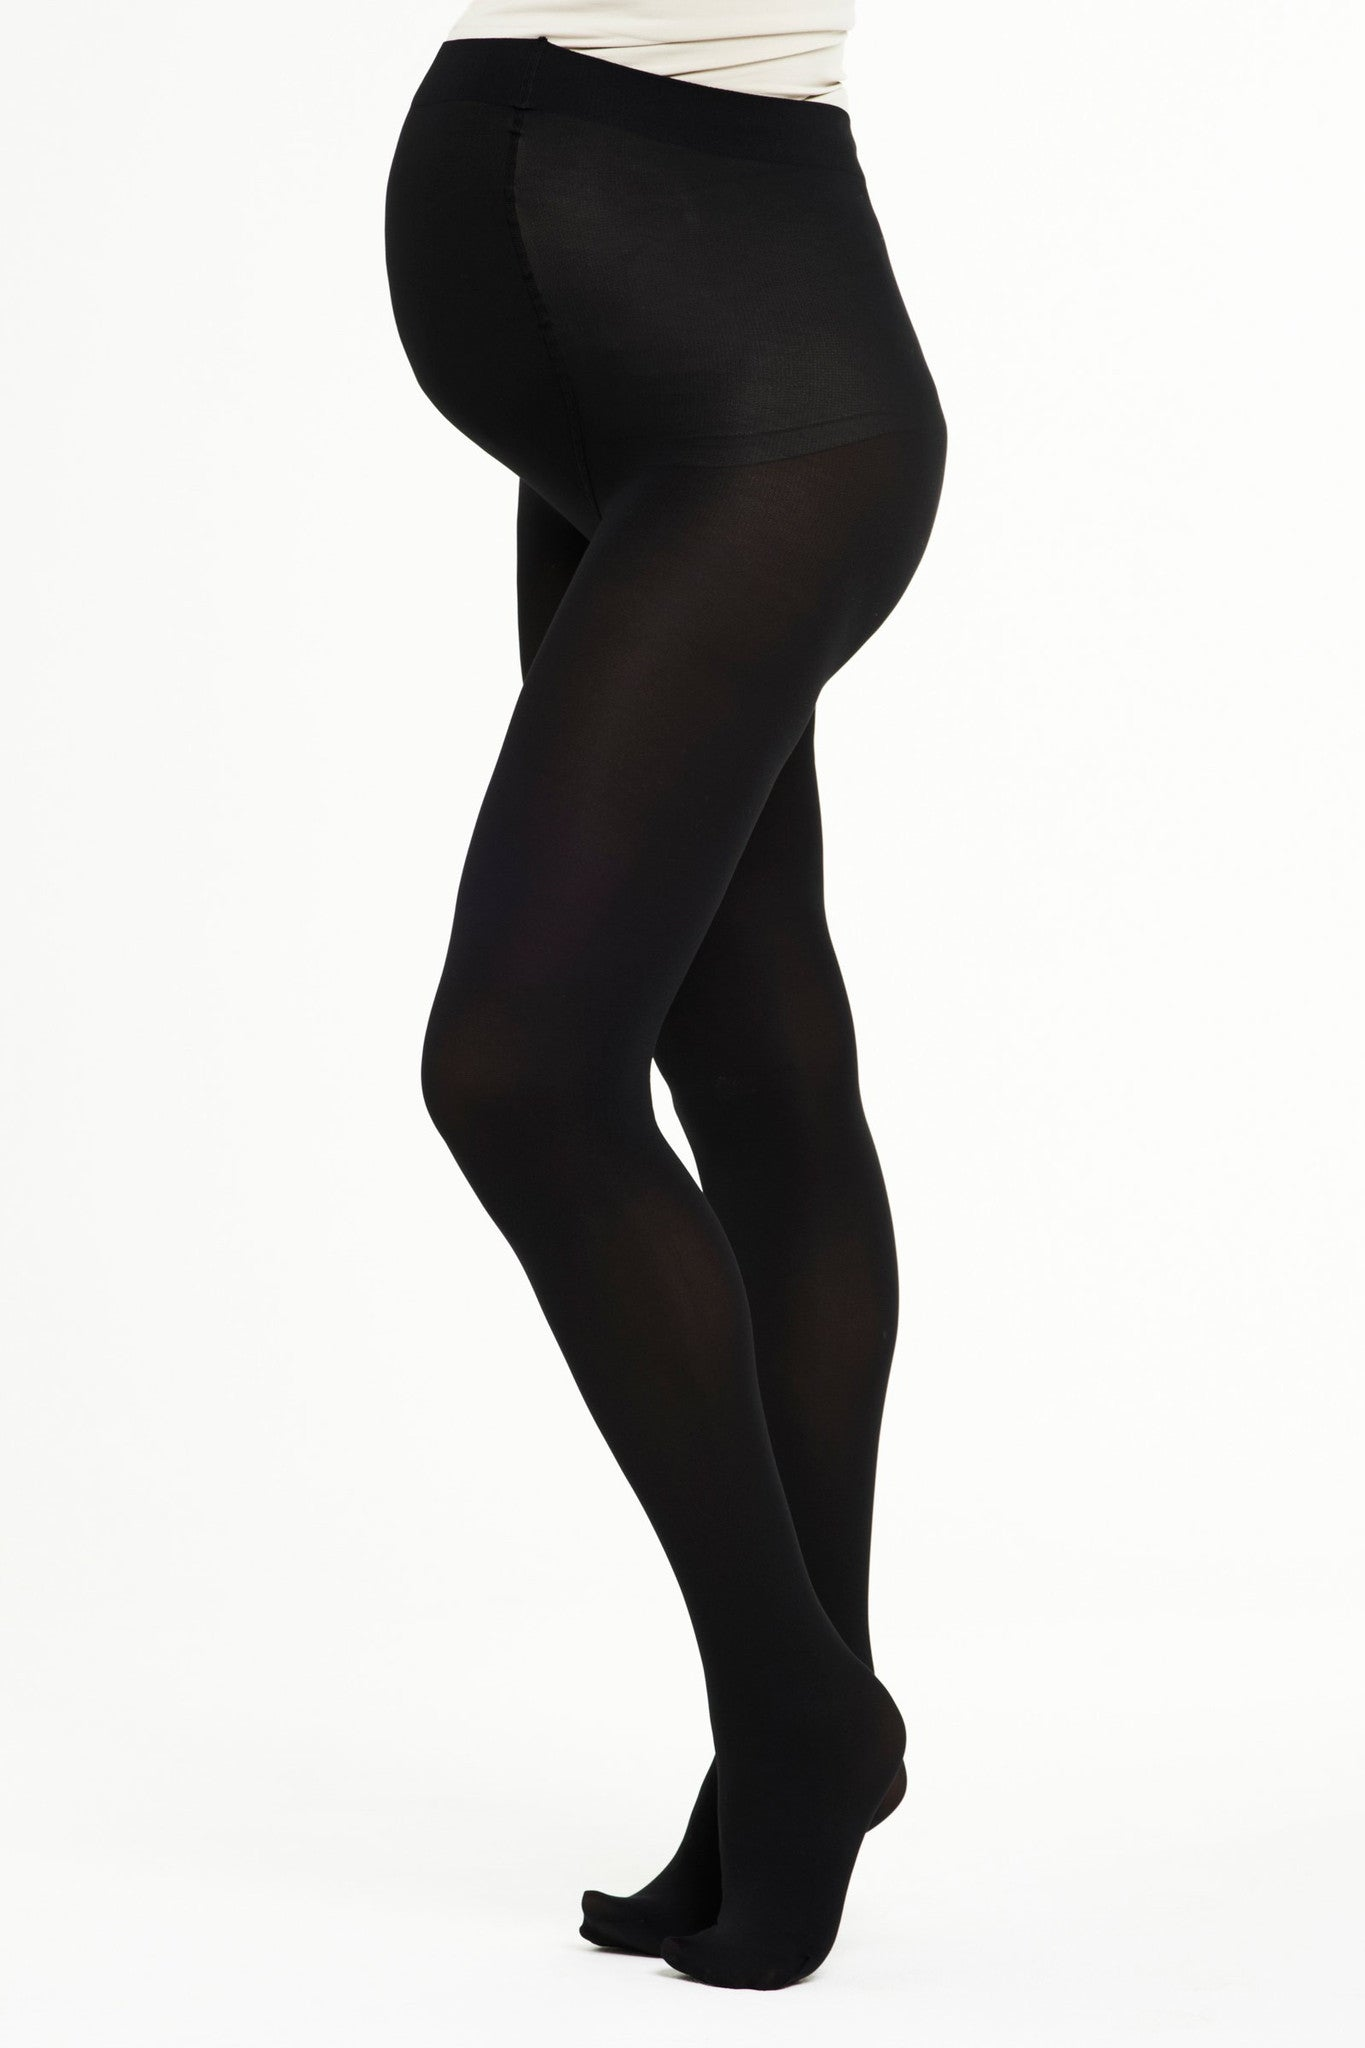 Mums in tights Queen Mum Maternity Tights Stylish Solutions For Career Canada